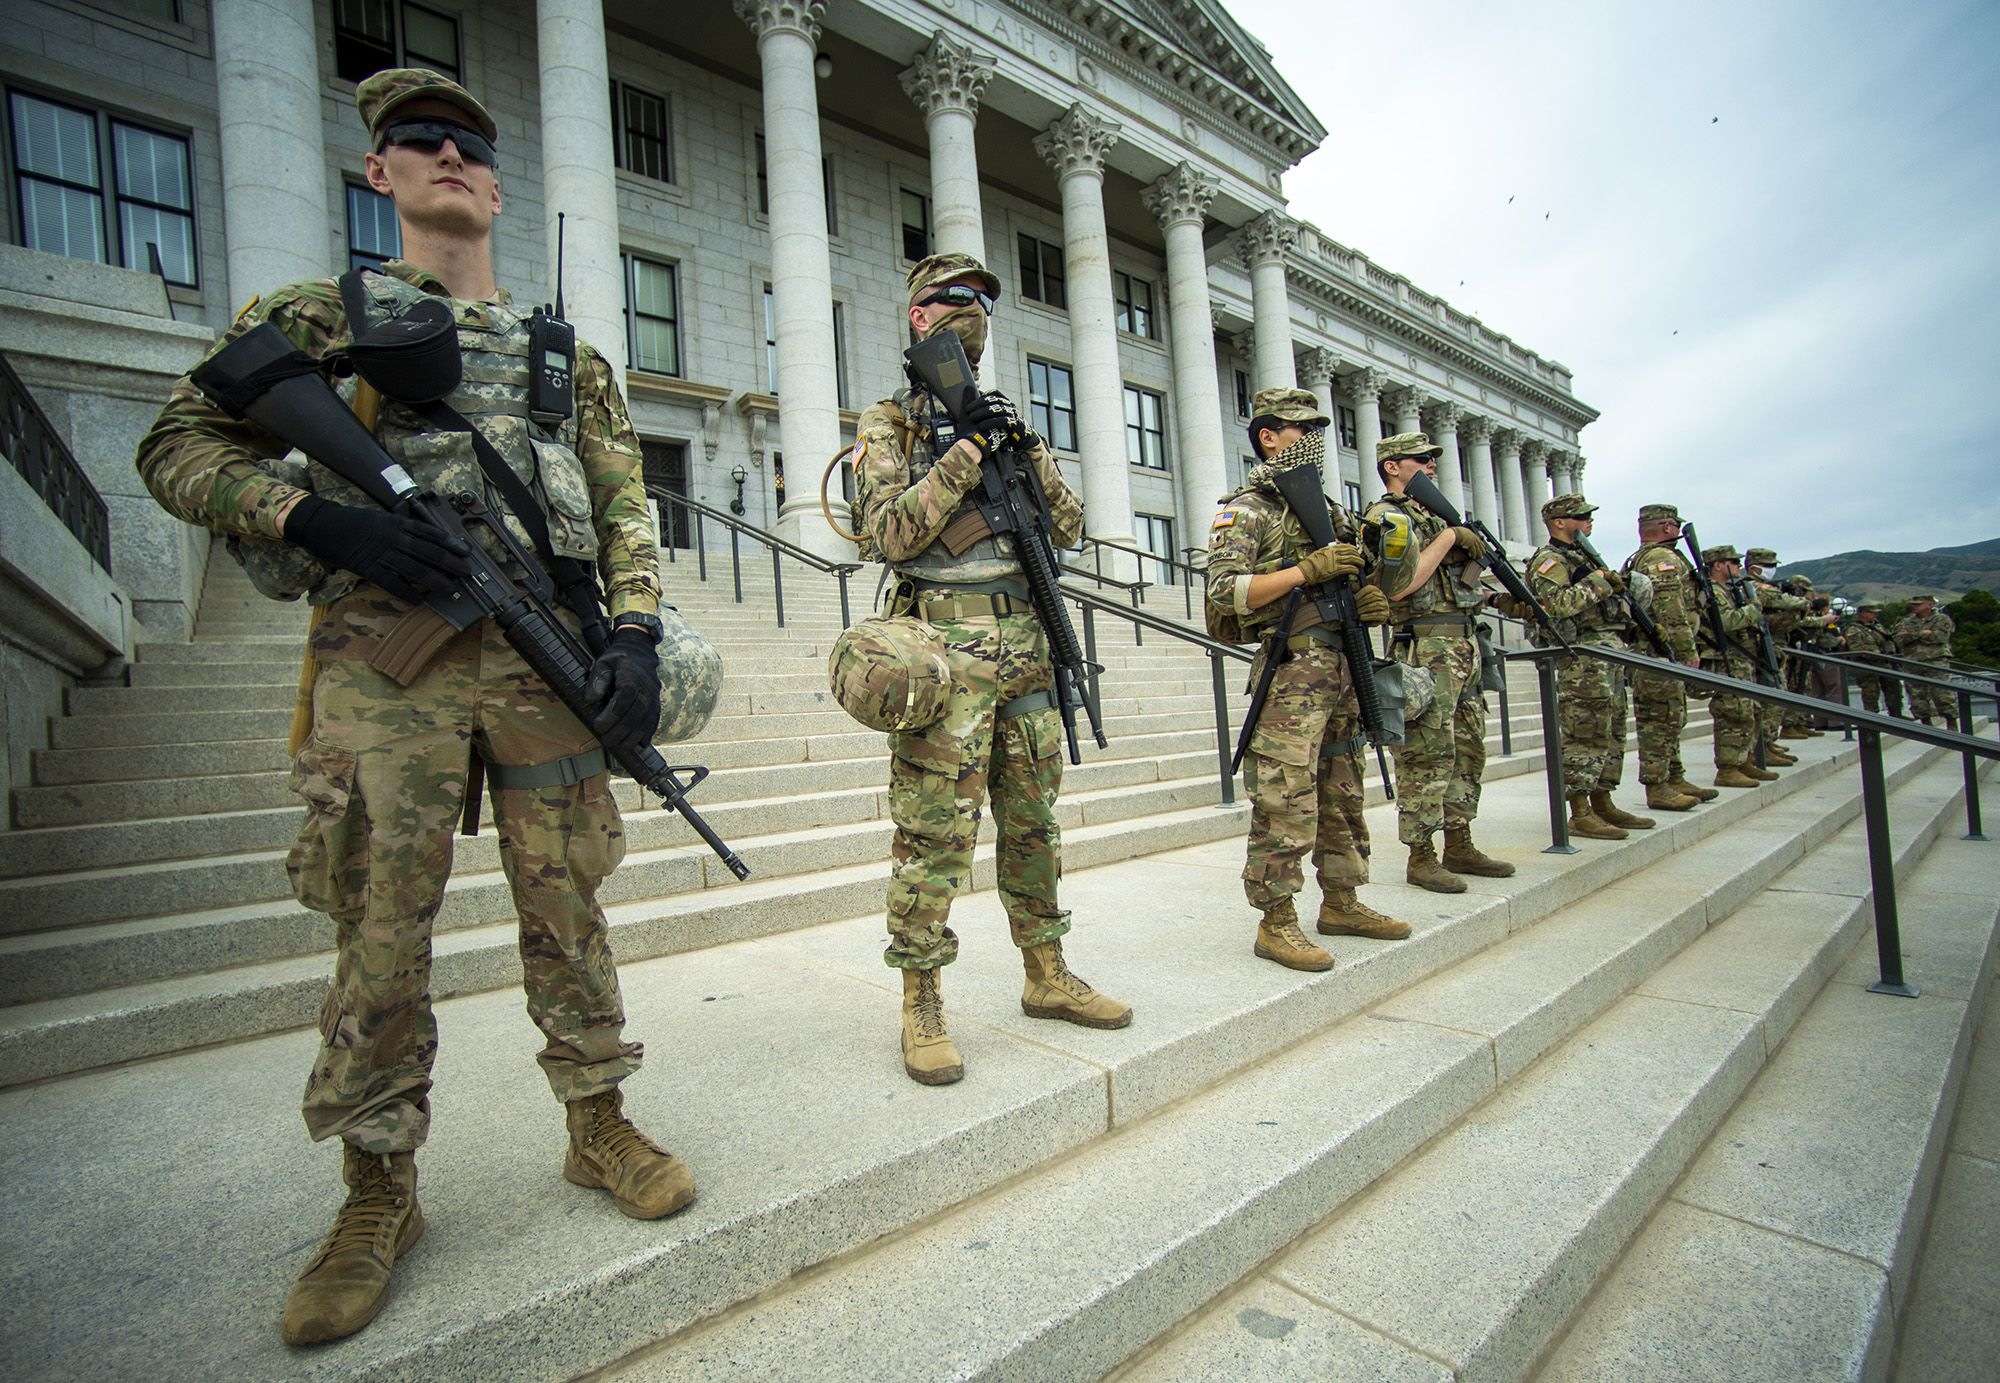 (Rick Egan  |  The Salt Lake Tribune) Members of the National Guard stand on the steps of the Capitol, along way back from the hundreds of protesters across the street from the Capitol, during a George Floyd, demonstration in Salt Lake City on Thursday, June 4, 2020.